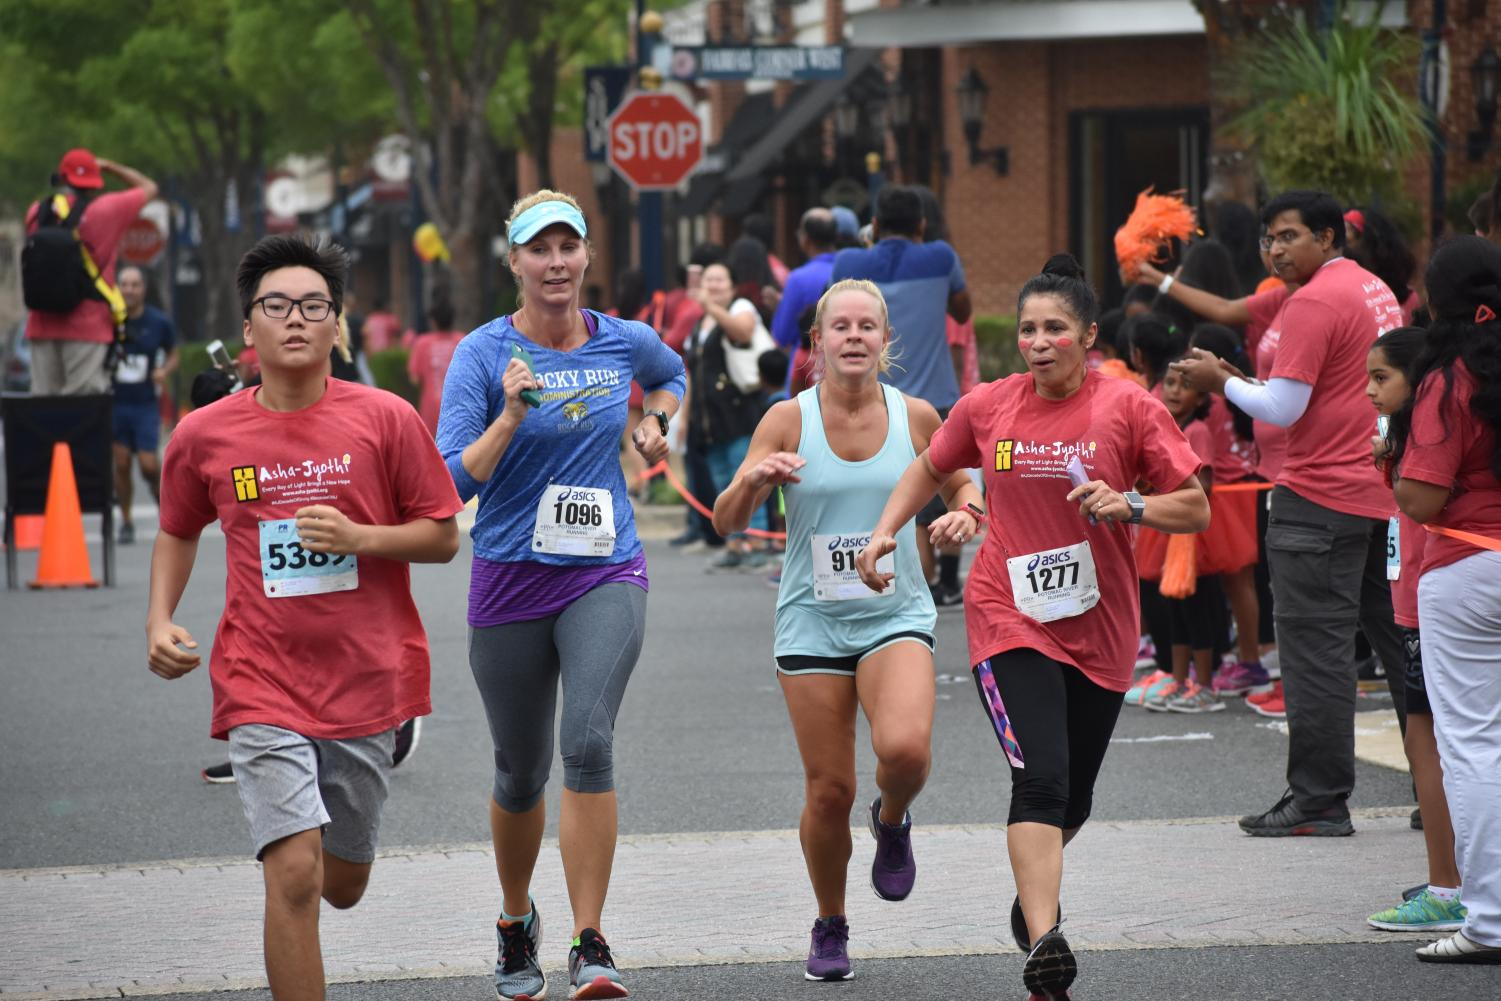 Sophomore Arnold Chinbat, Rocky Run Principal Amy Goodloe, Rocky Run English teacher Jeannine Magwire and Spanish teacher Zoraida Vazquez run for a cause at the Asha-Jyothi 5K.